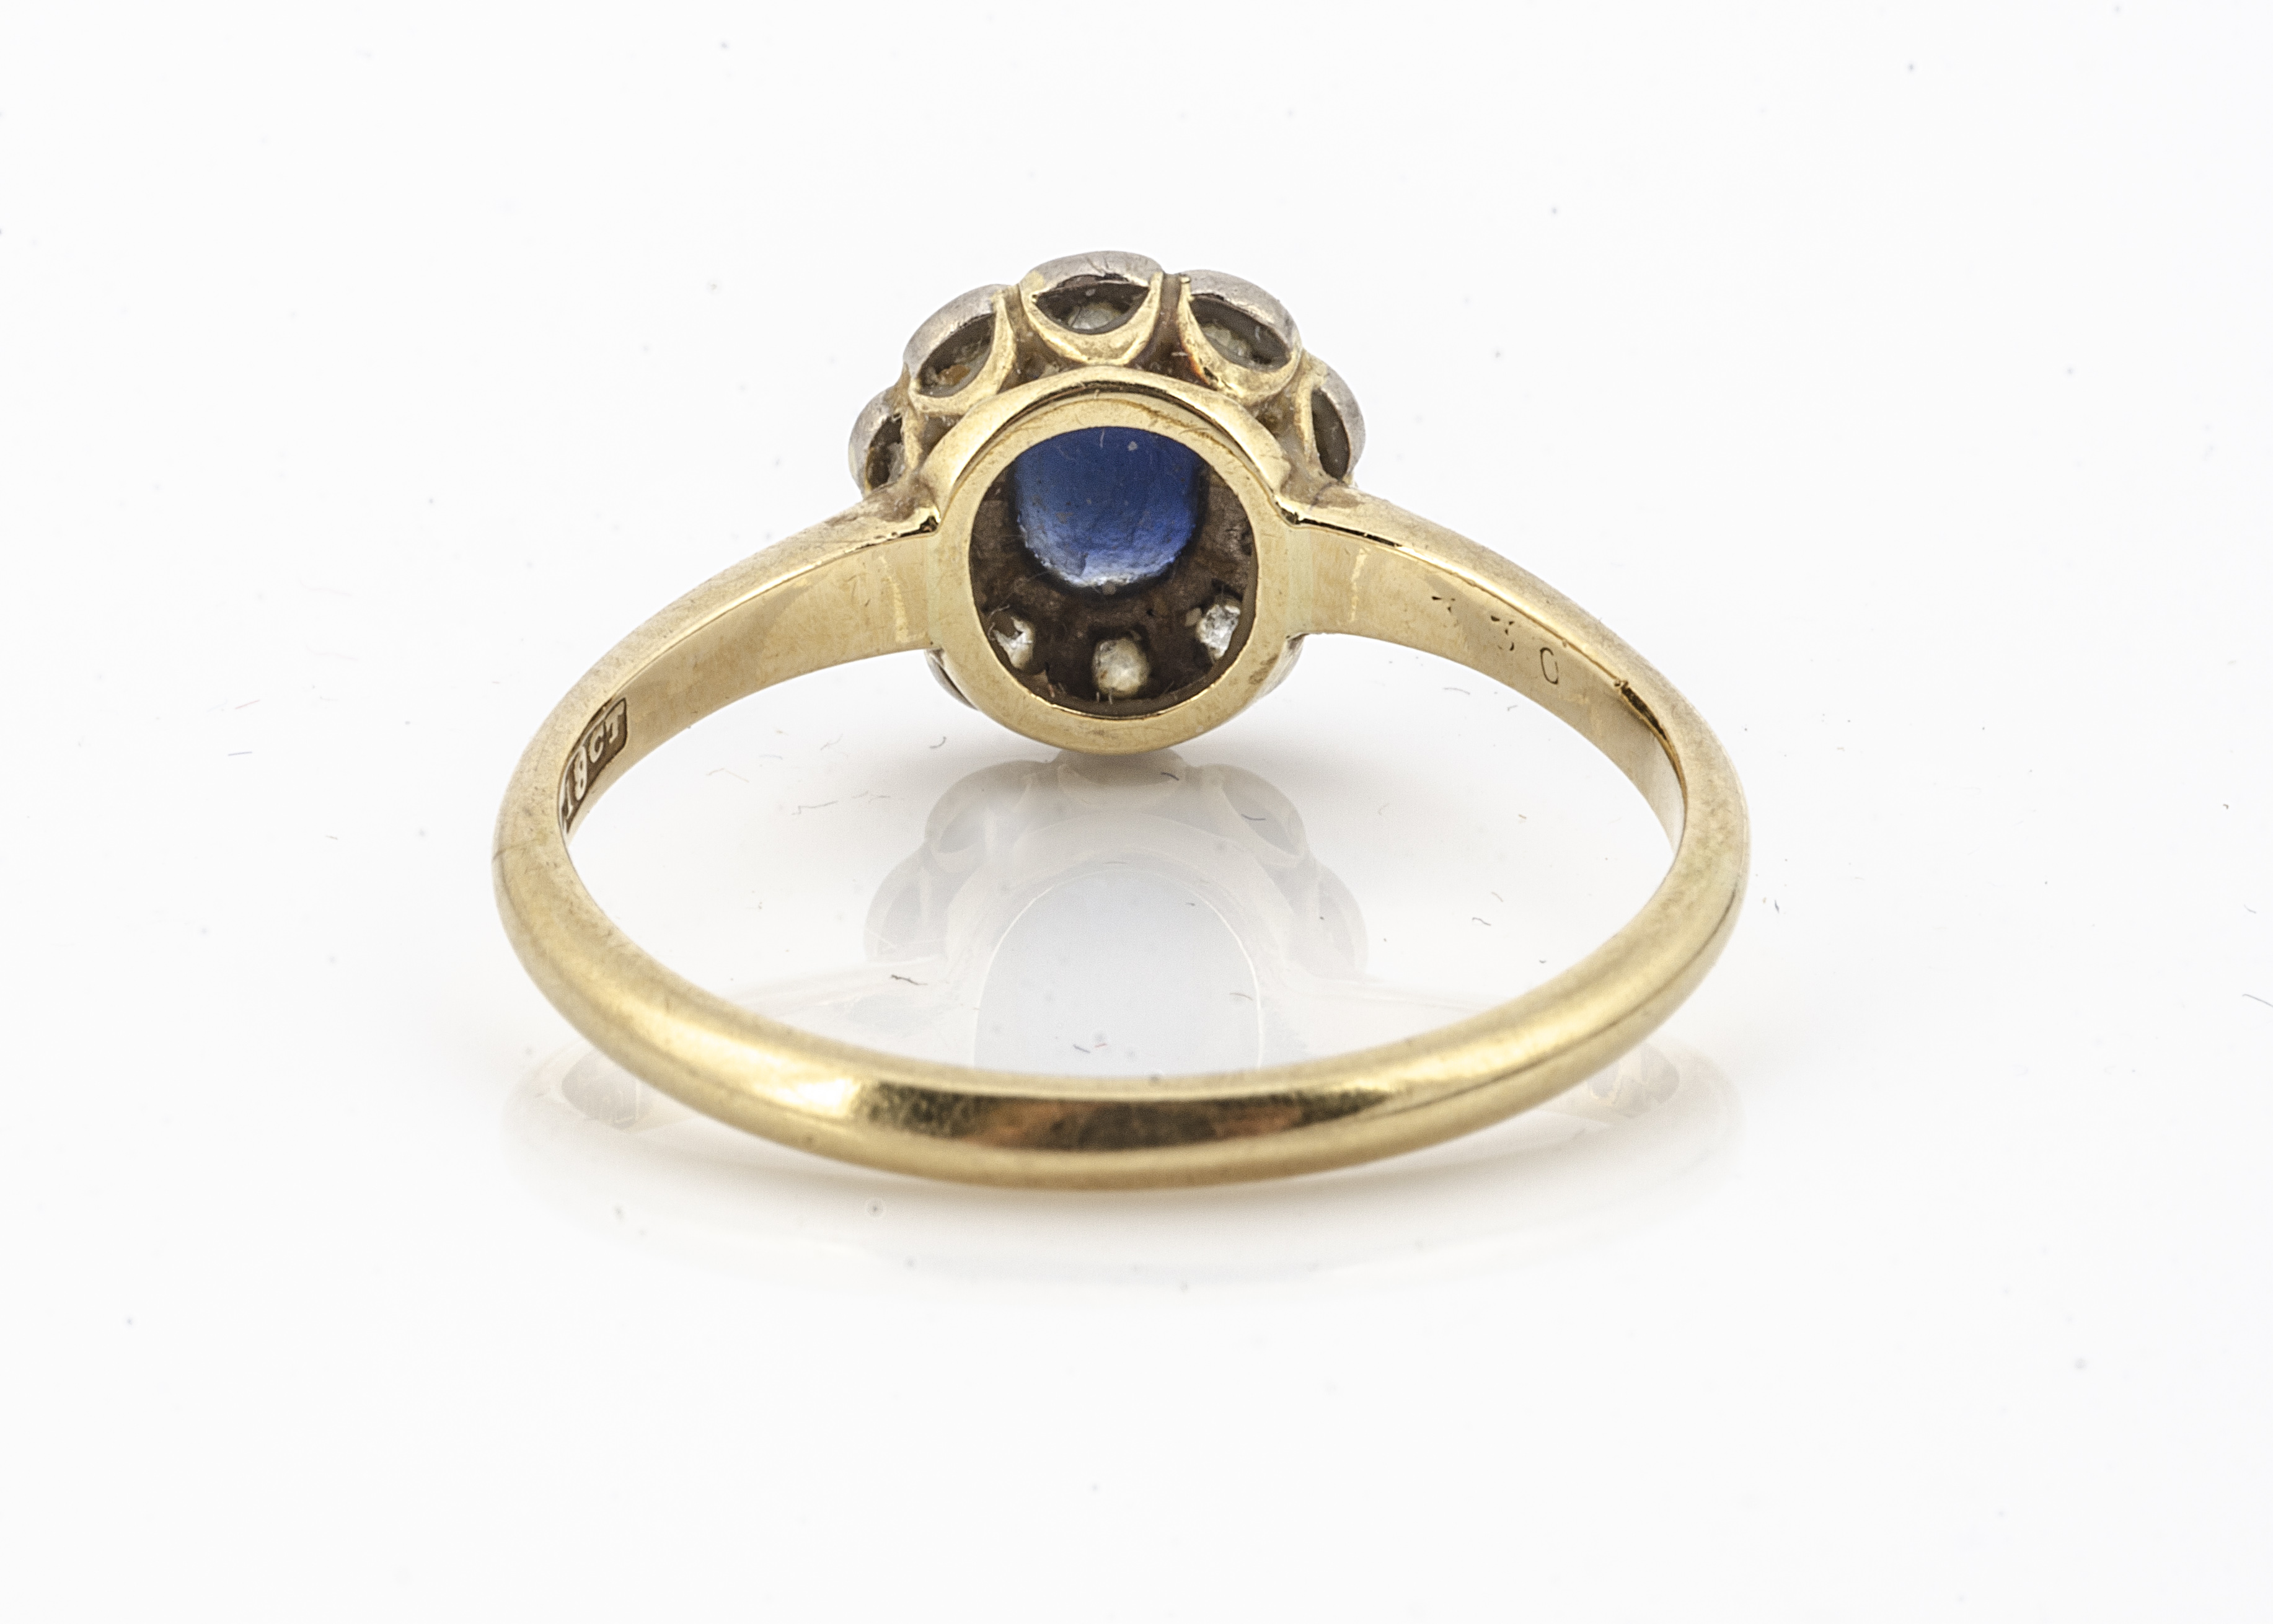 A sapphire and diamond cluster ring, the oval mixed cut sapphire heavily abraded, in claw setting - Image 2 of 2